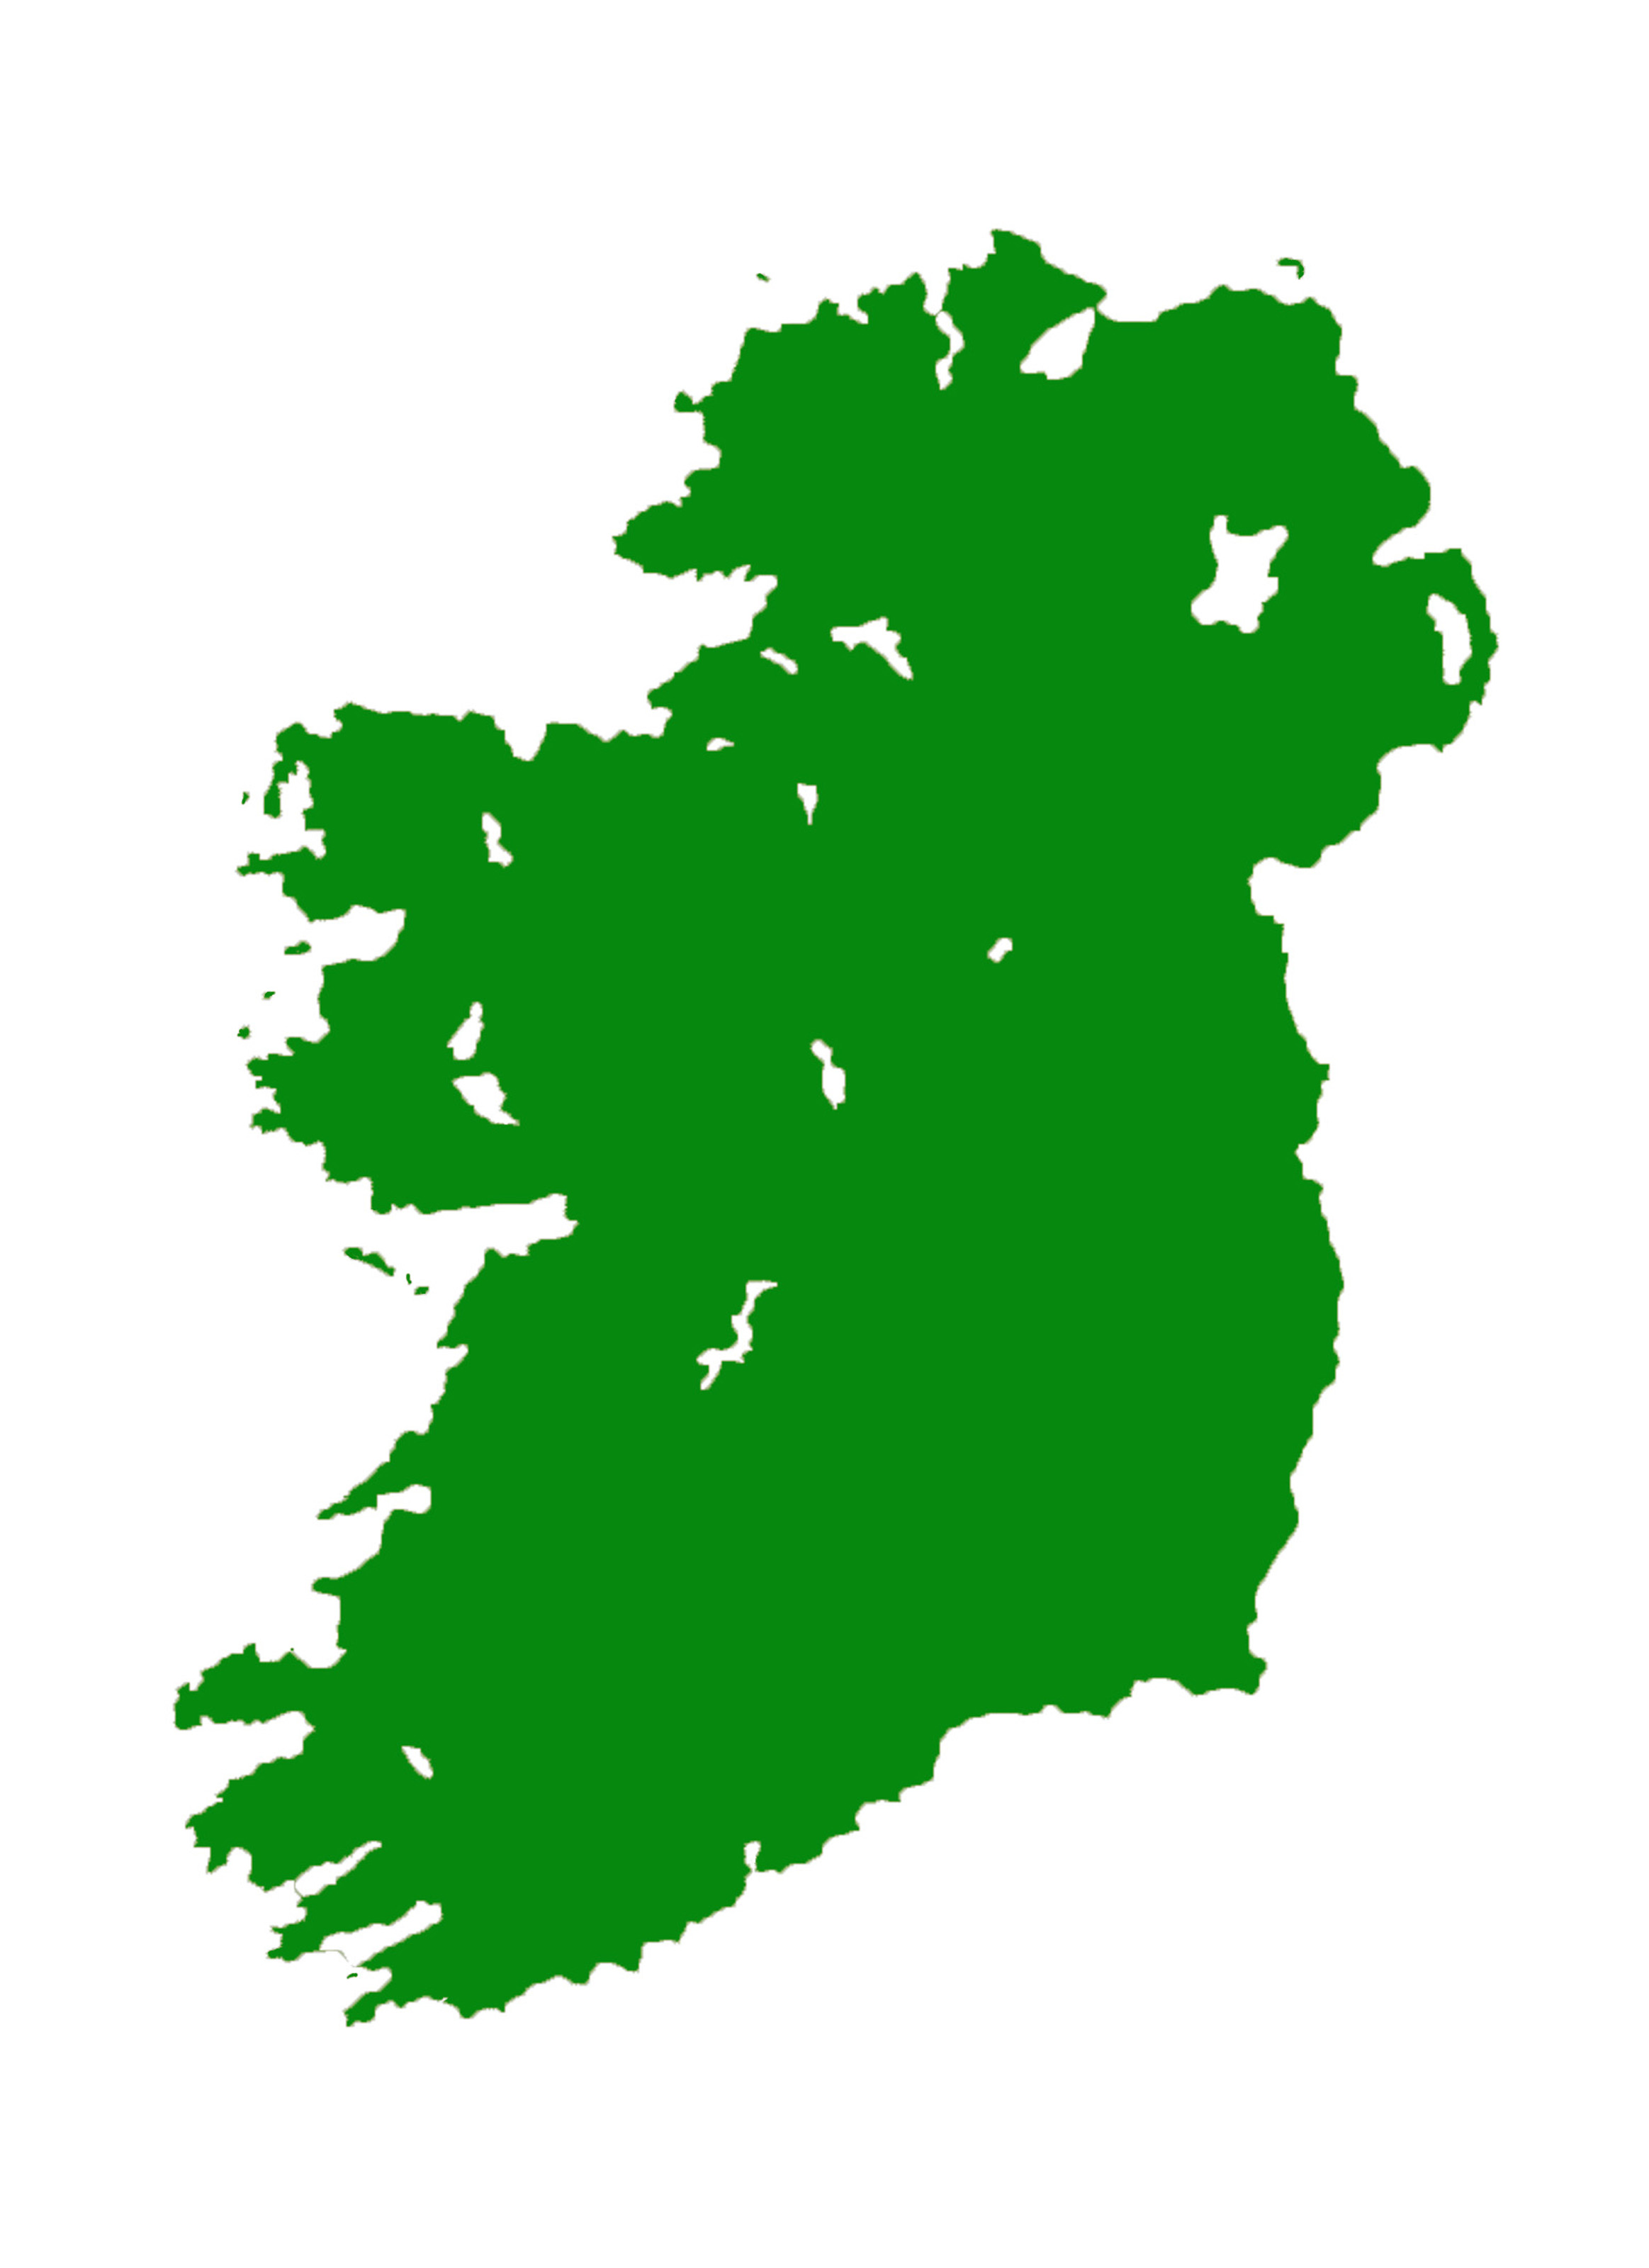 Map Of Ireland Download.Free Stock Photo 8104 Irish Map Freeimageslive